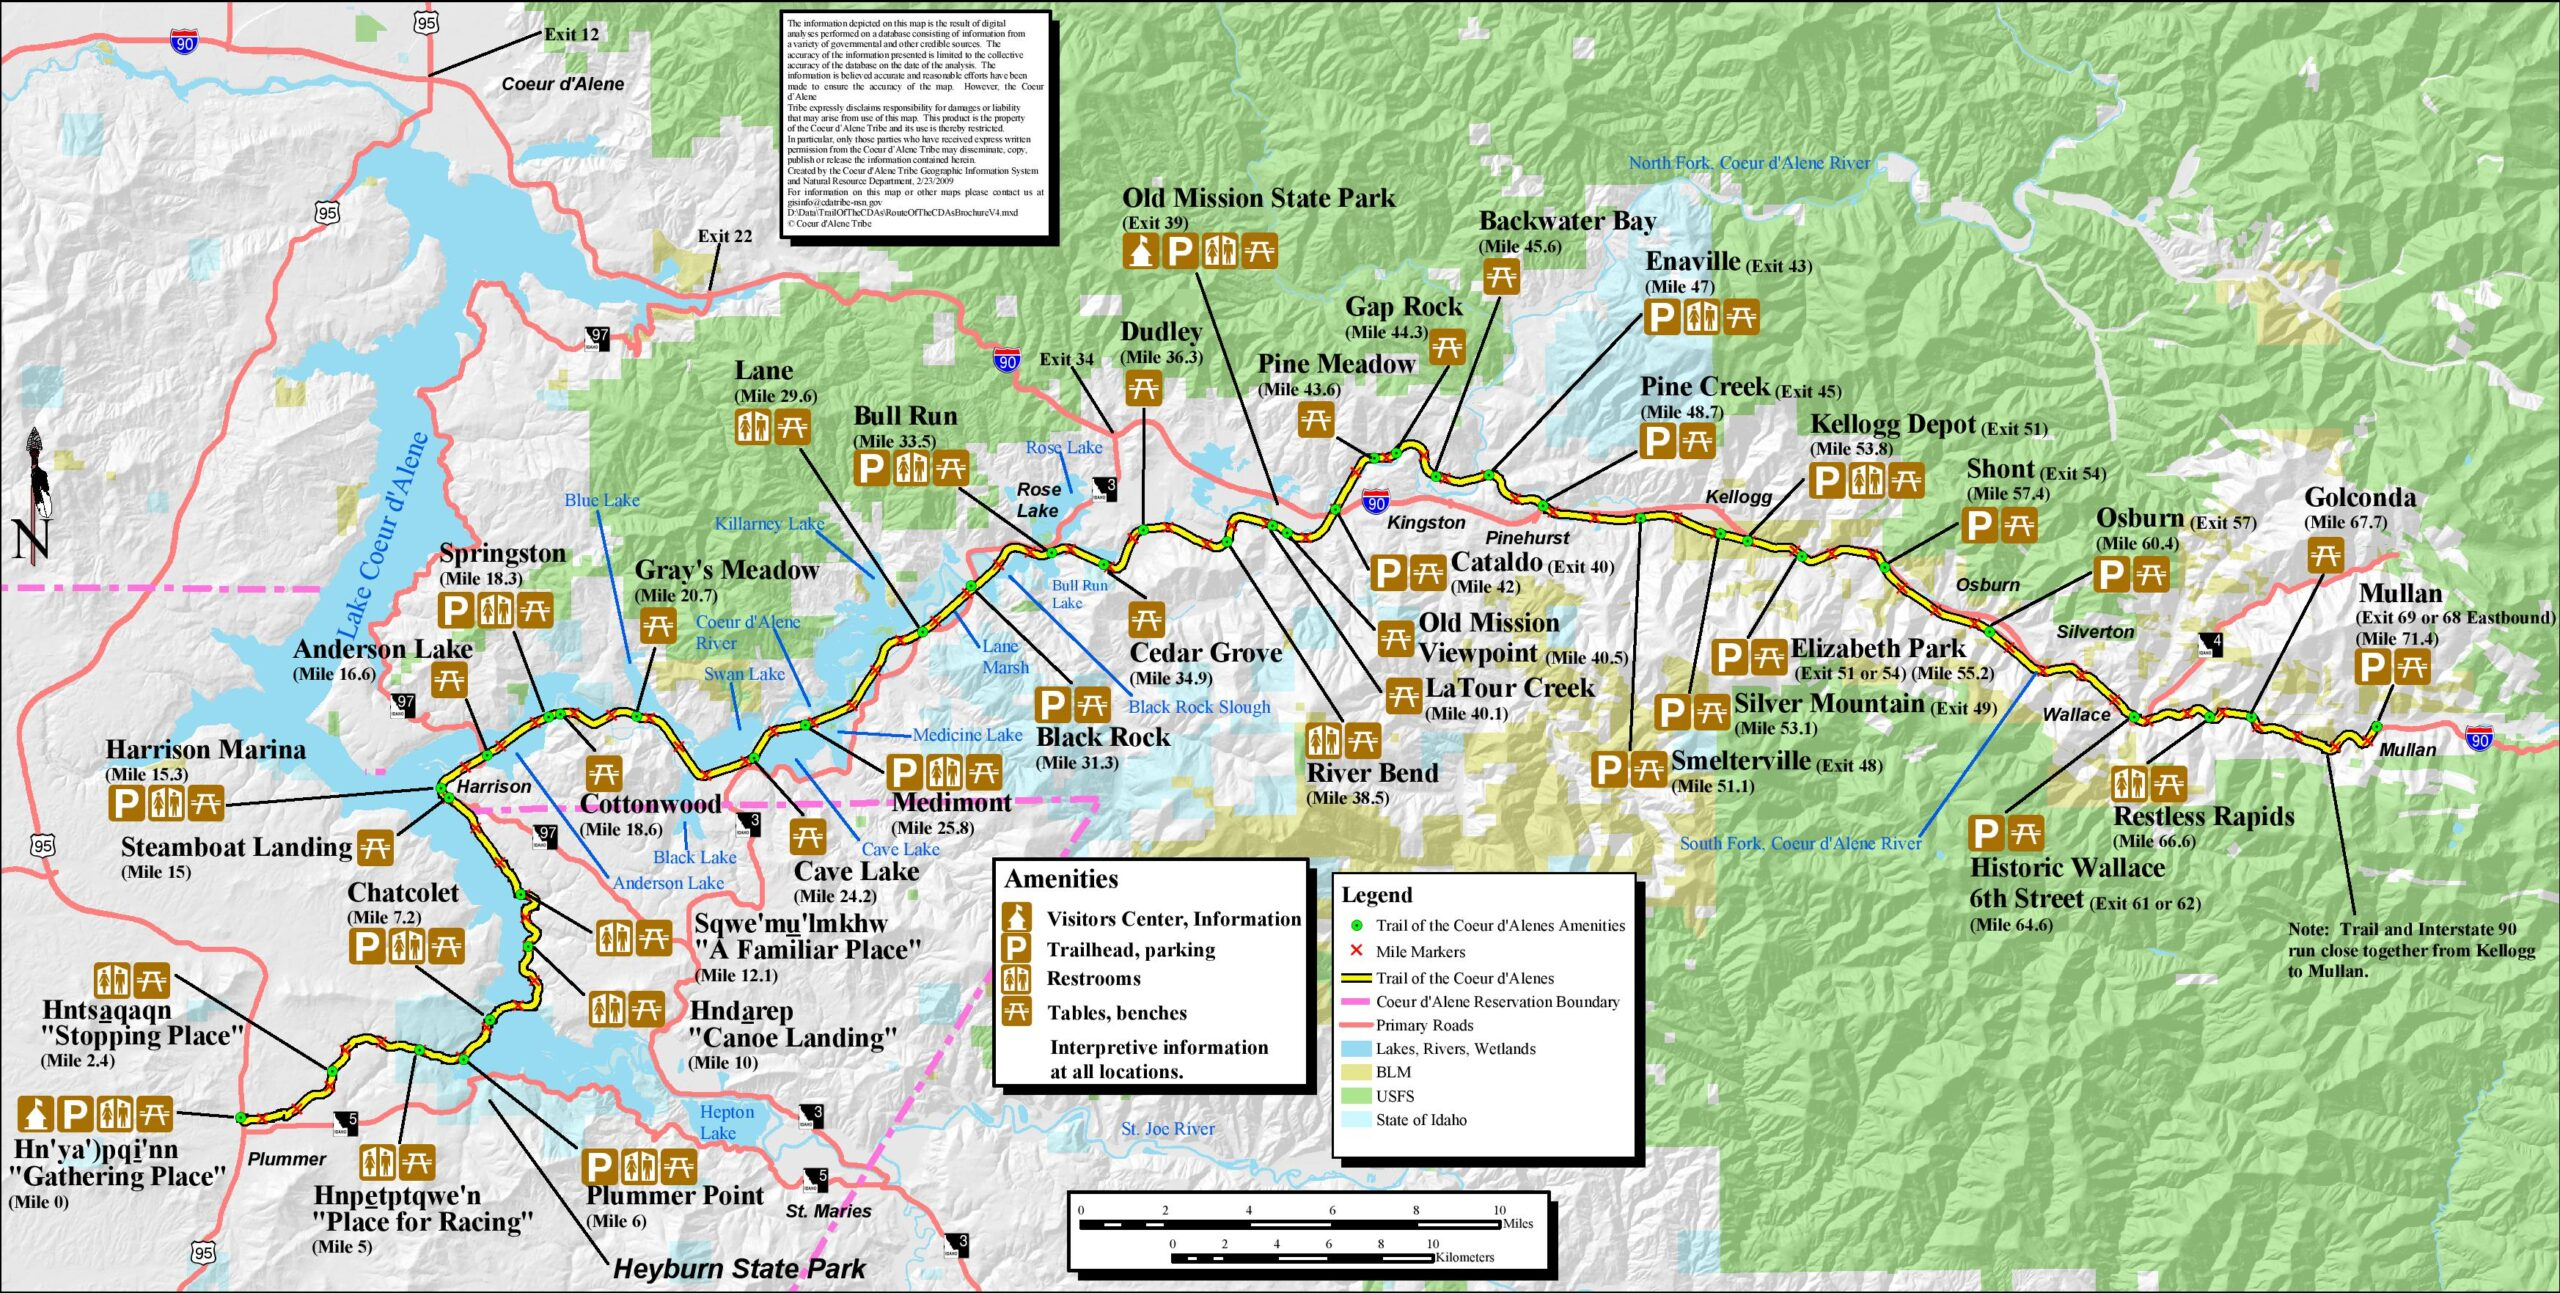 Trail Map for the Trail of the CDA's